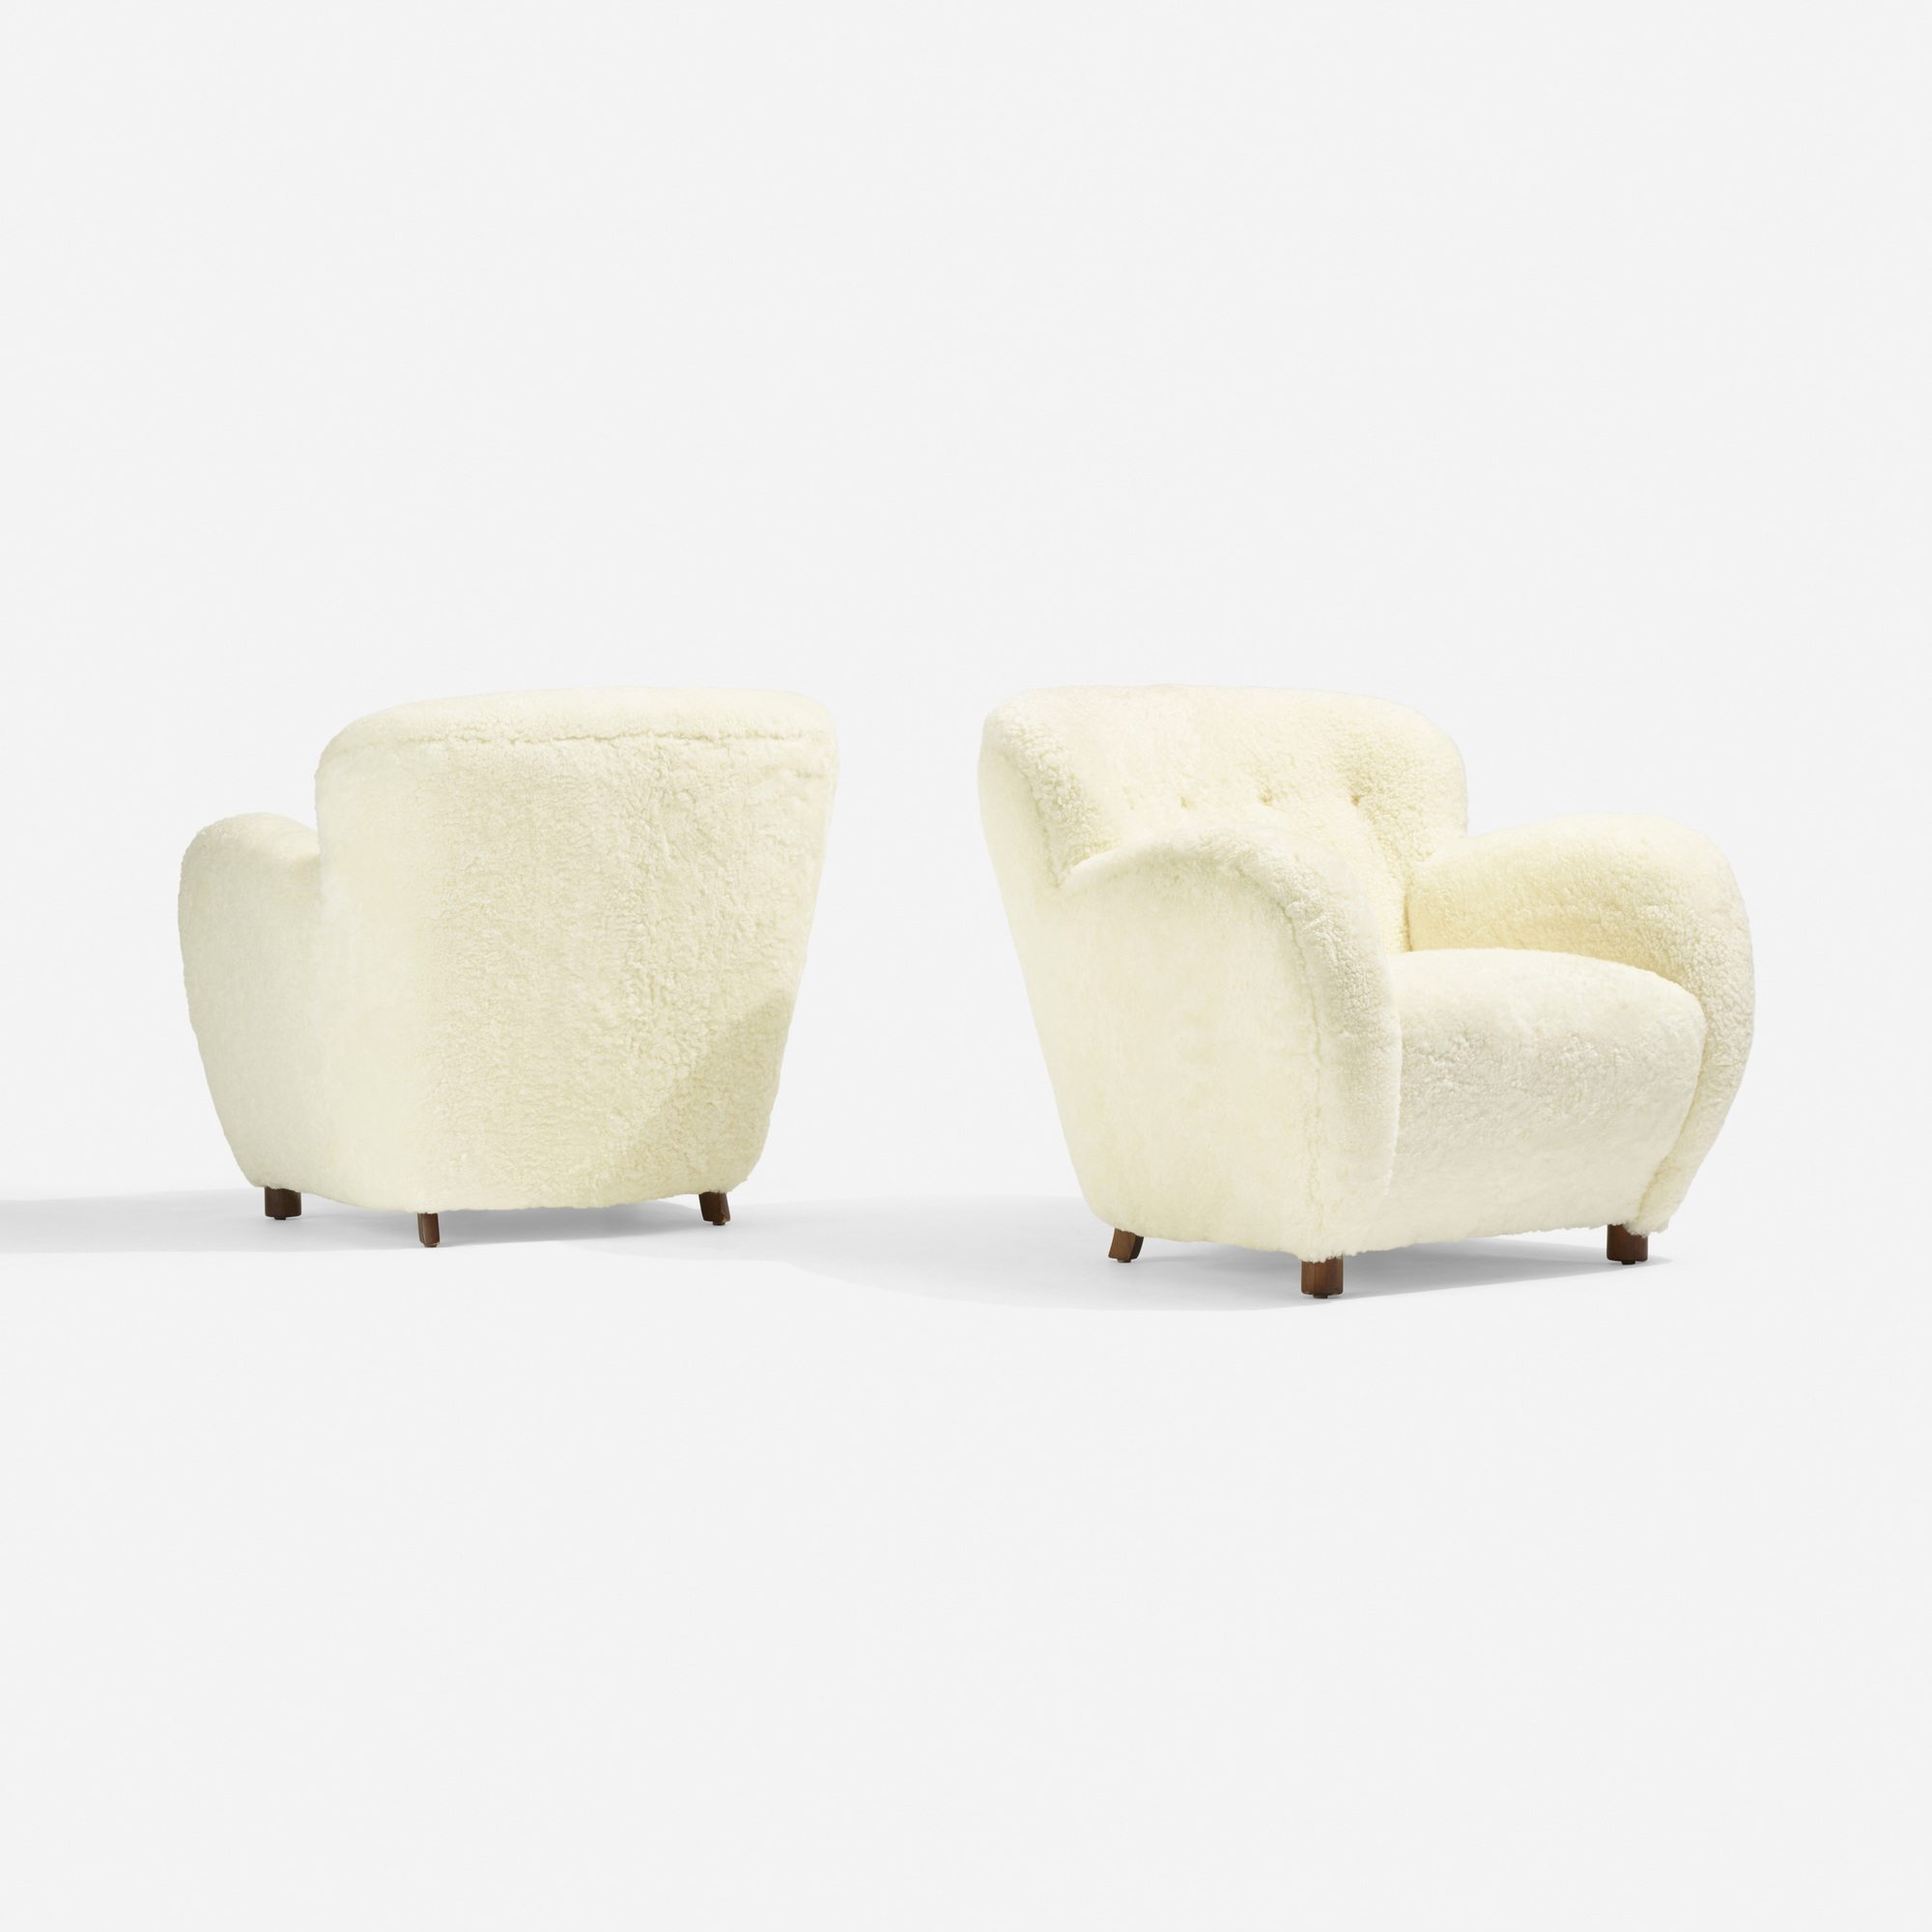 182: Flemming Lassen, attribution / lounge chairs, pair (2 of 3)